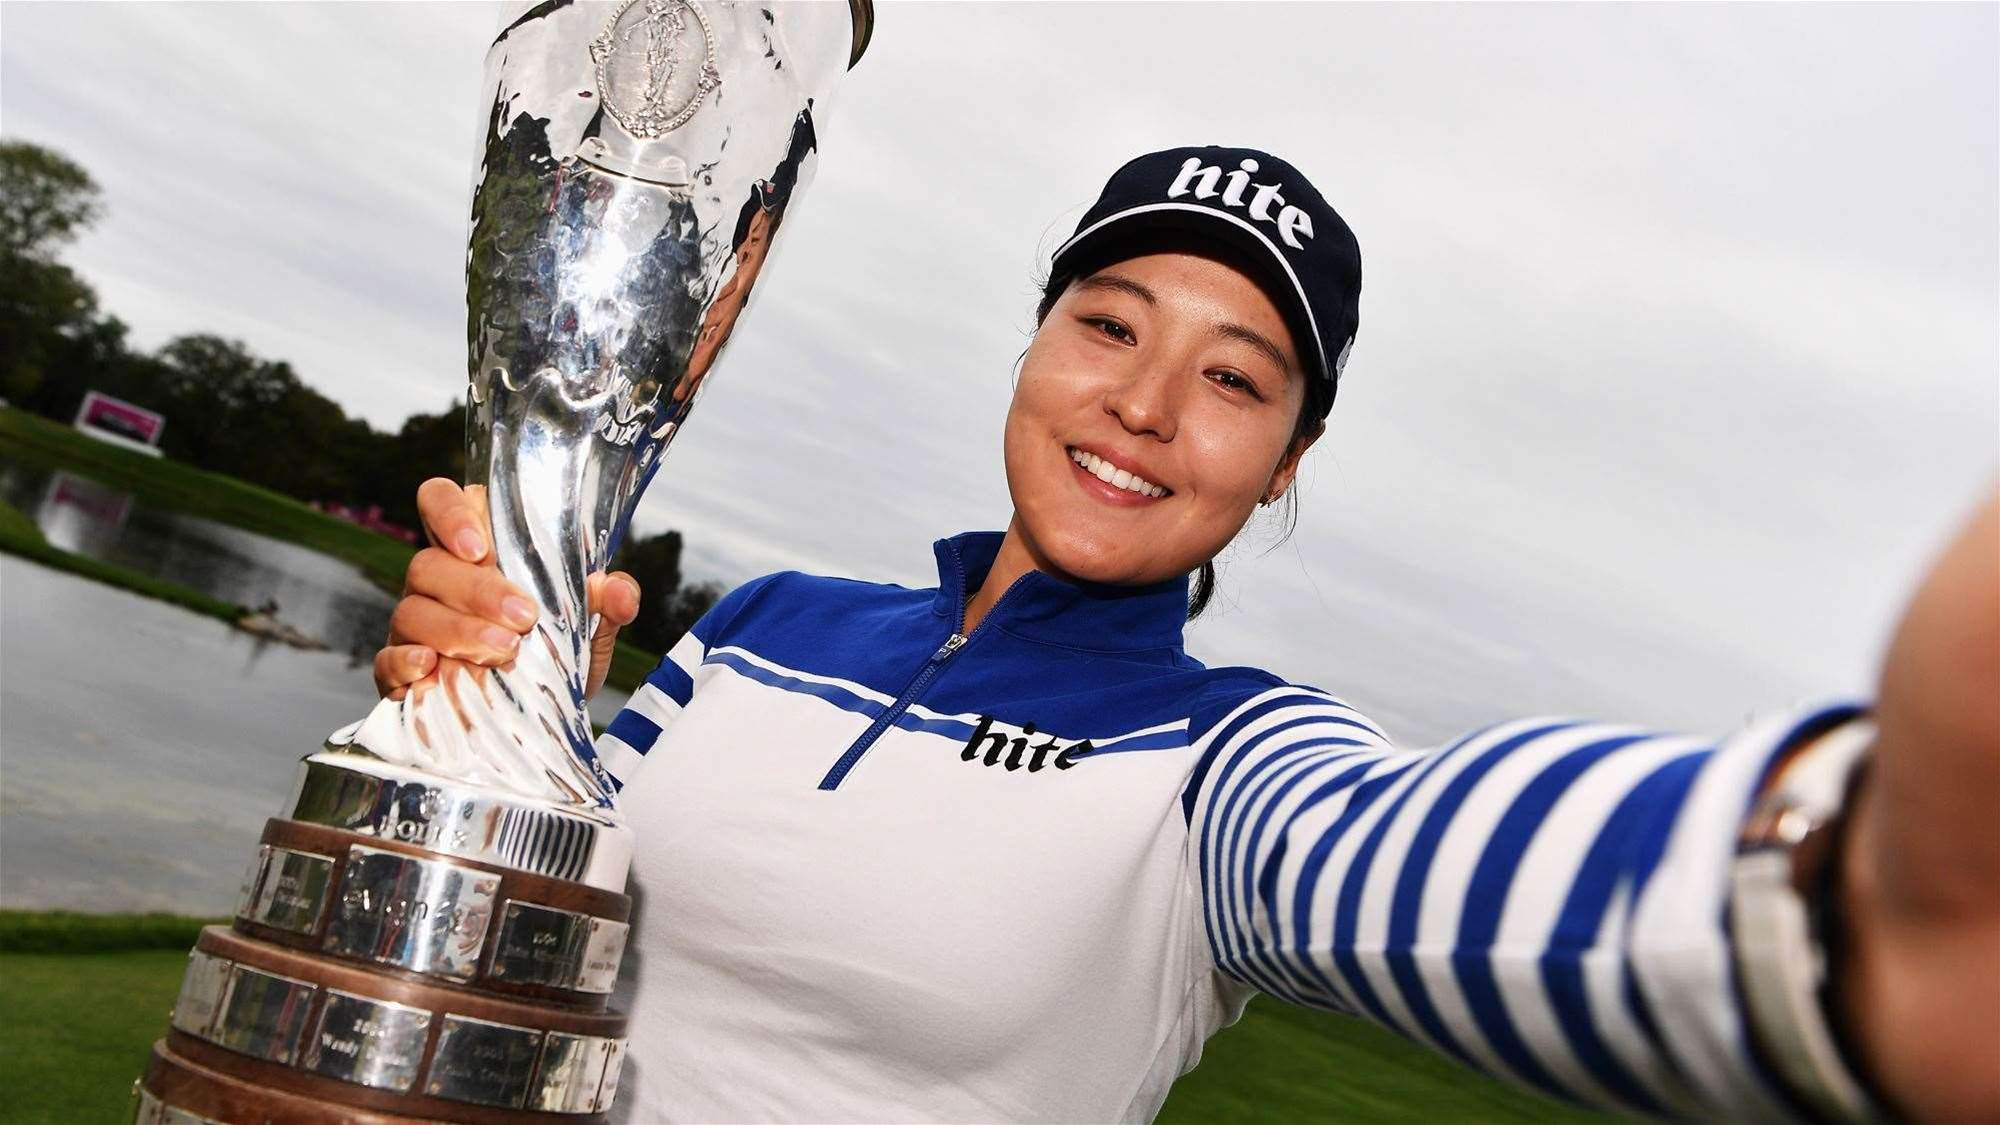 LPGA: Chun sets new major record with Evian win